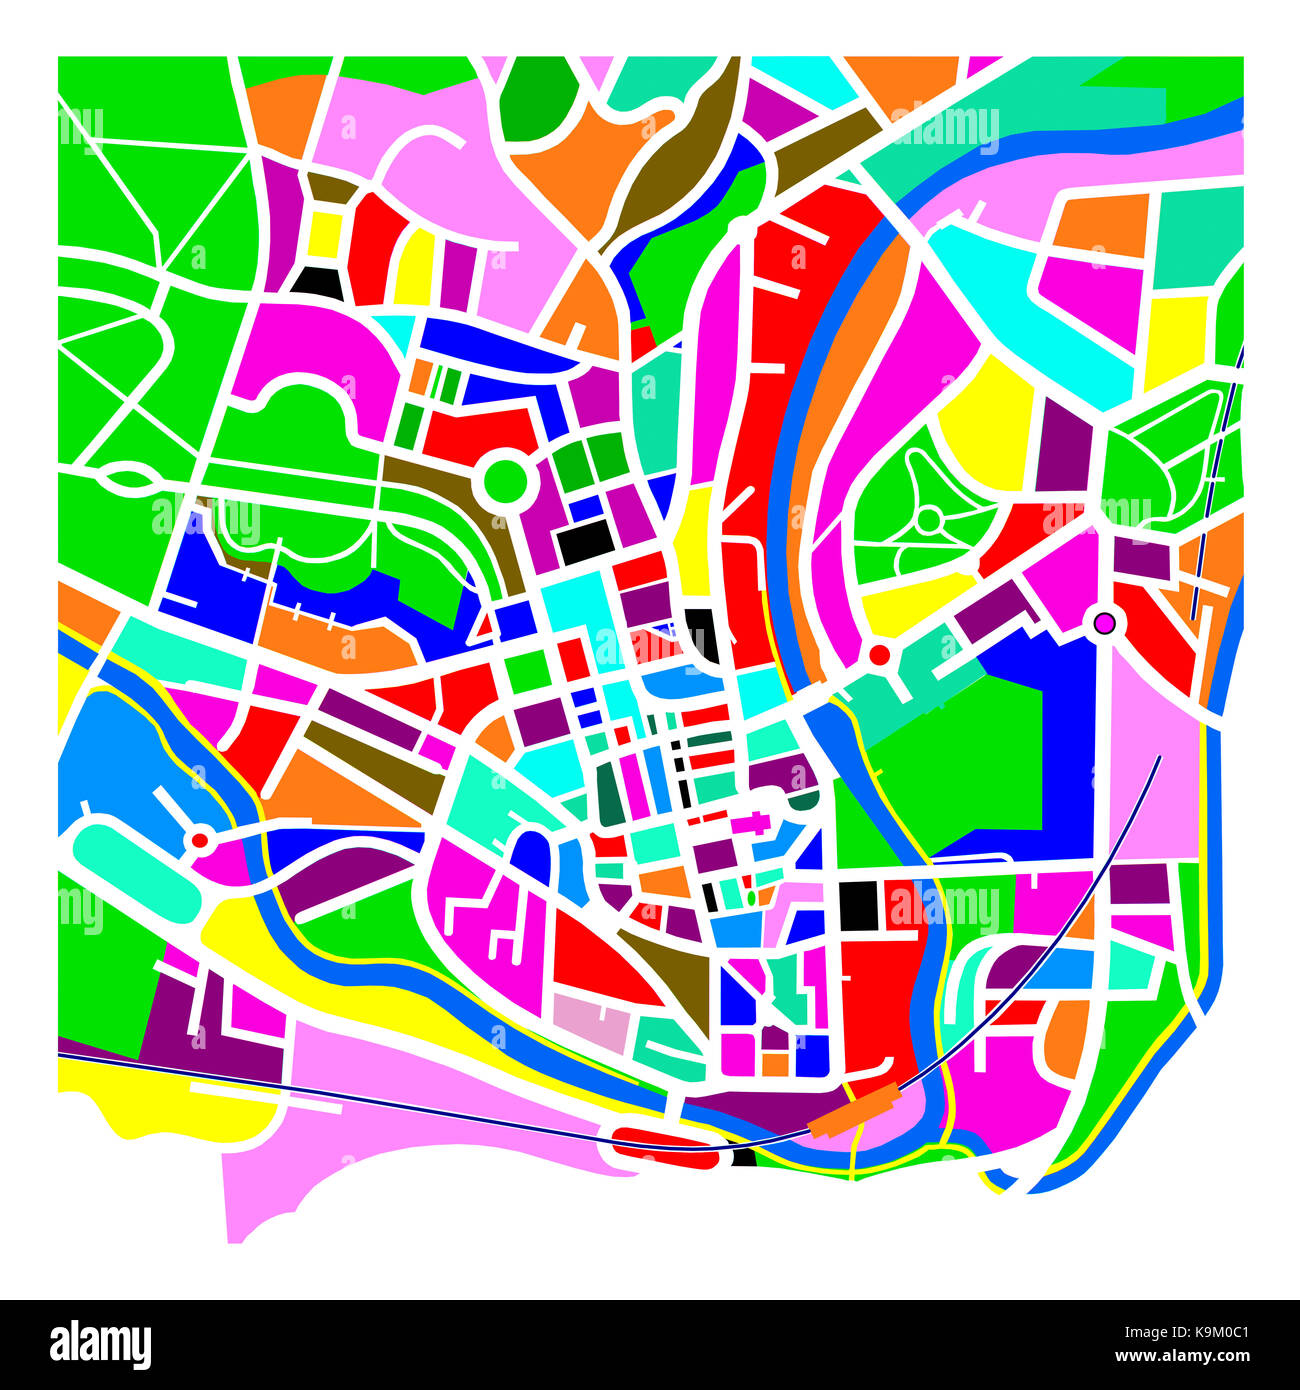 Colourful Graphic Representation of a Map of Bath Stock Photo